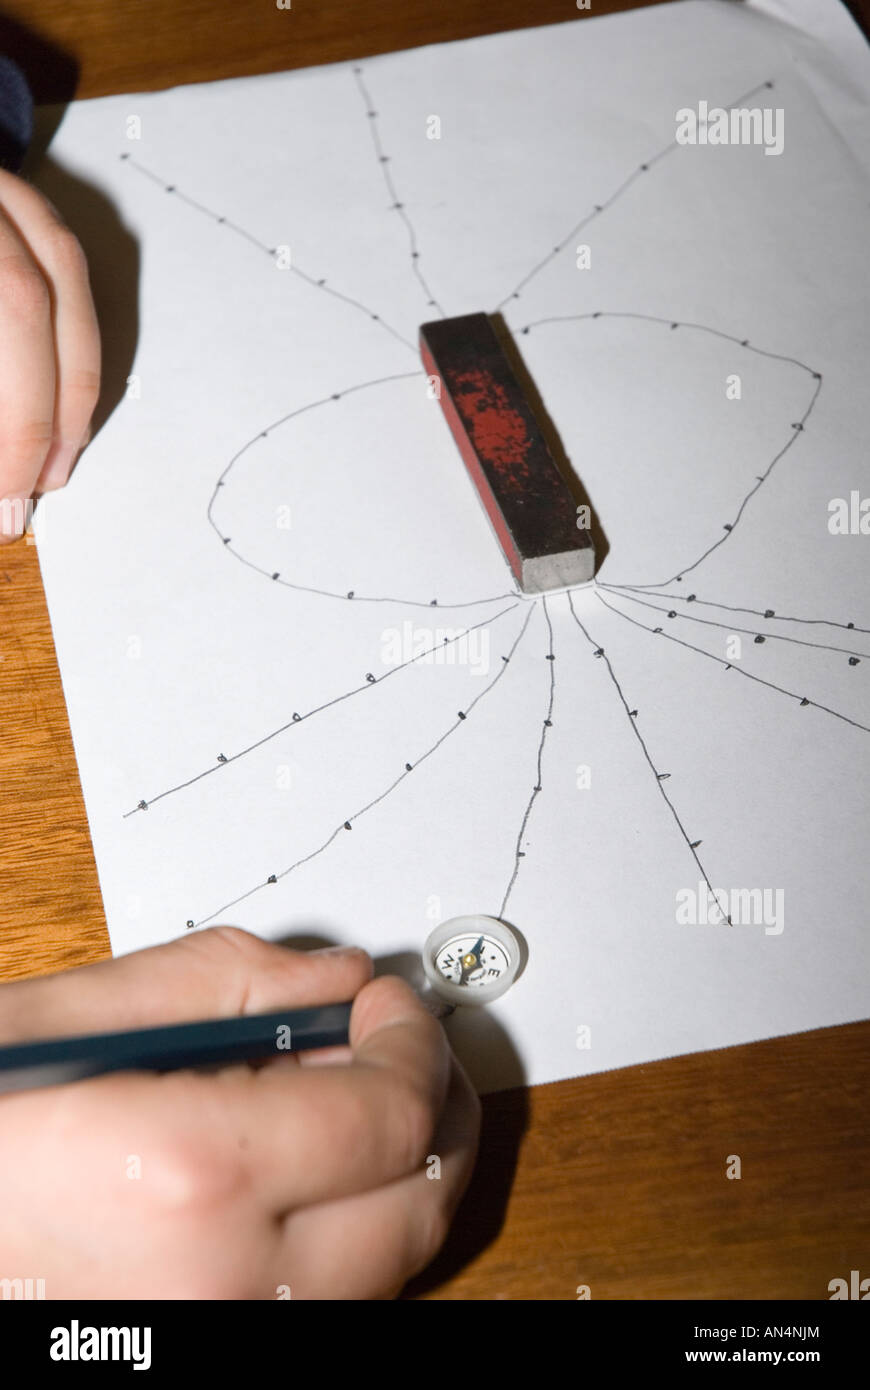 Drawing magnetic field lines around a bar magnet with a plotting compass. - Stock Image